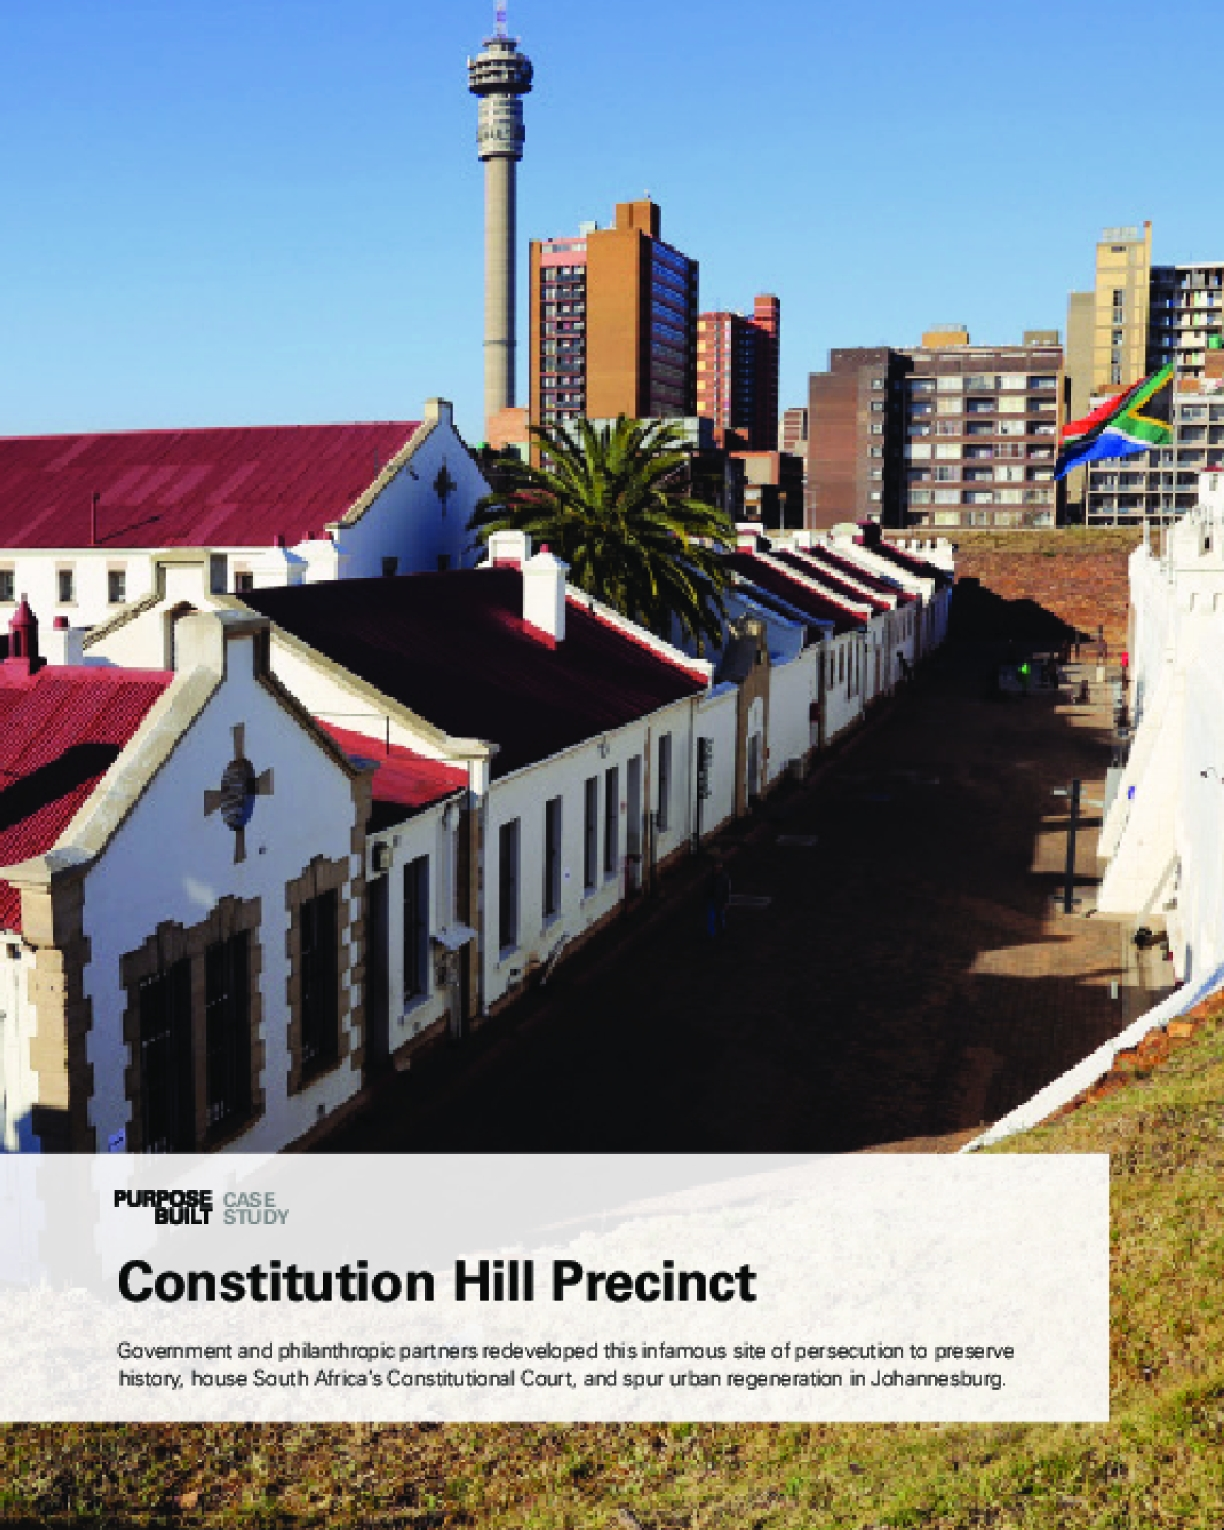 Purpose Built Case Study: Constitution Hill Precinct